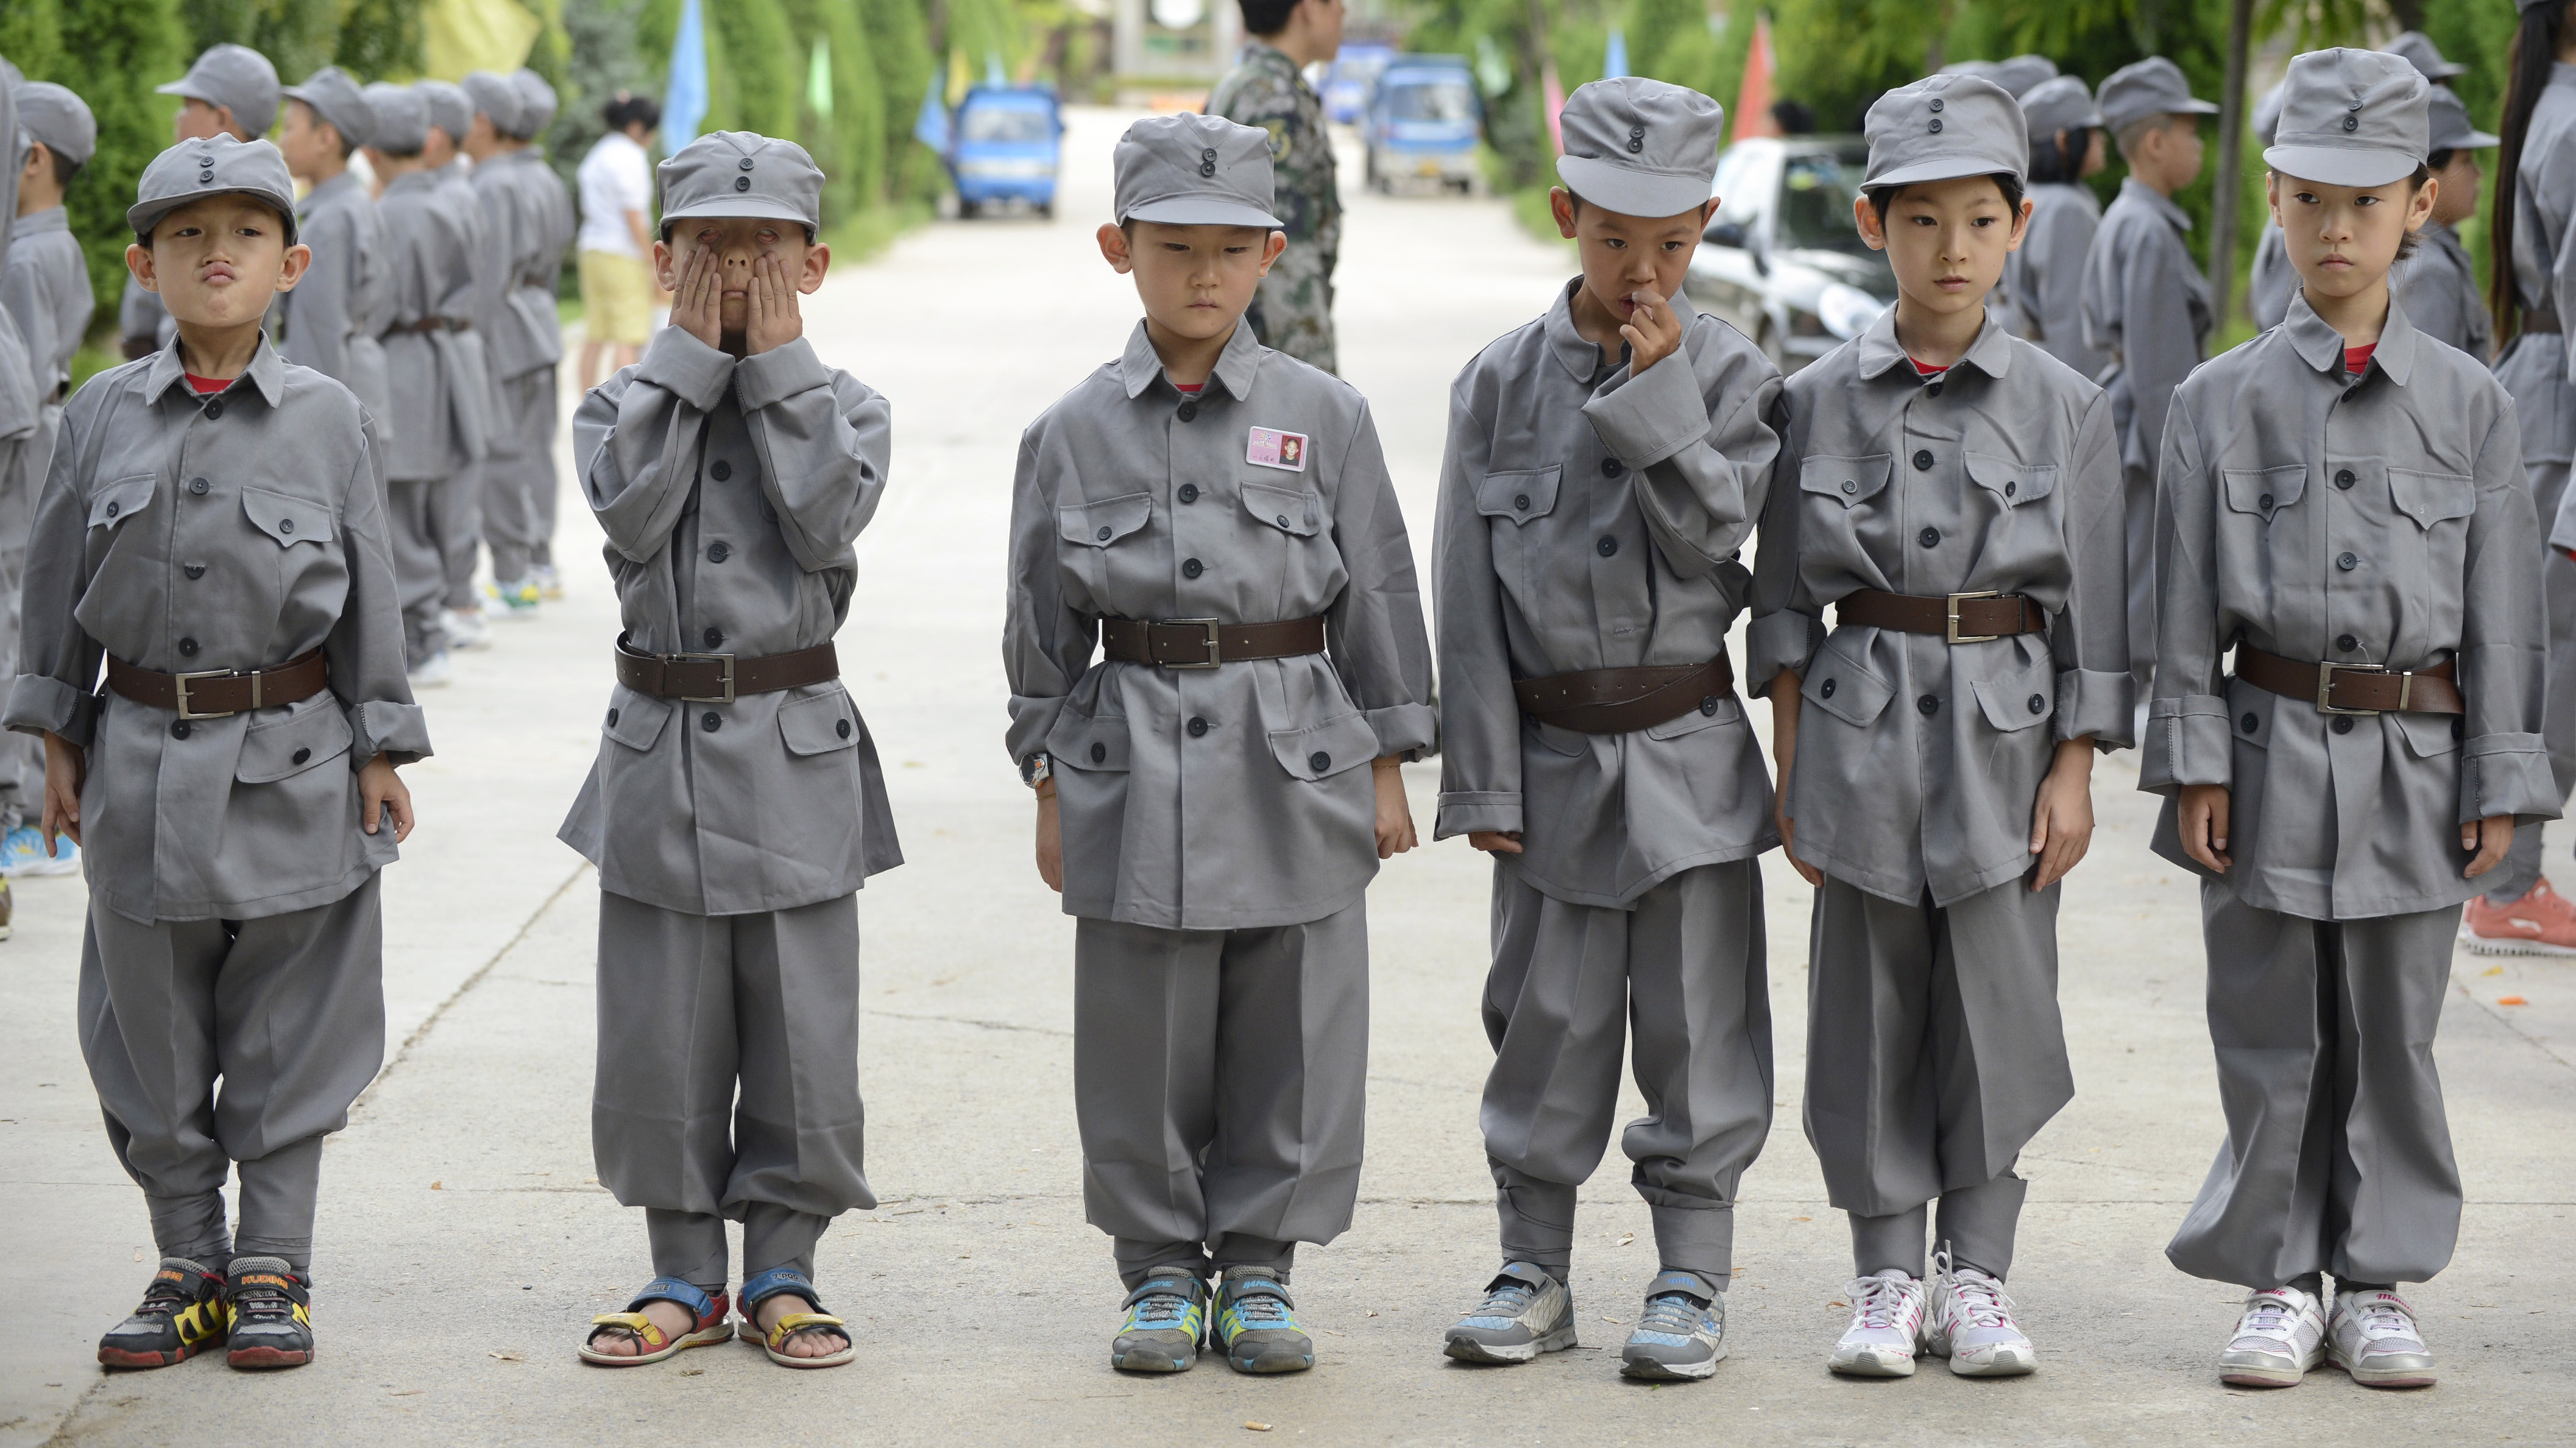 Primary school students in Red Army uniforms react as they take part in military formation training during camp in Taiyuan